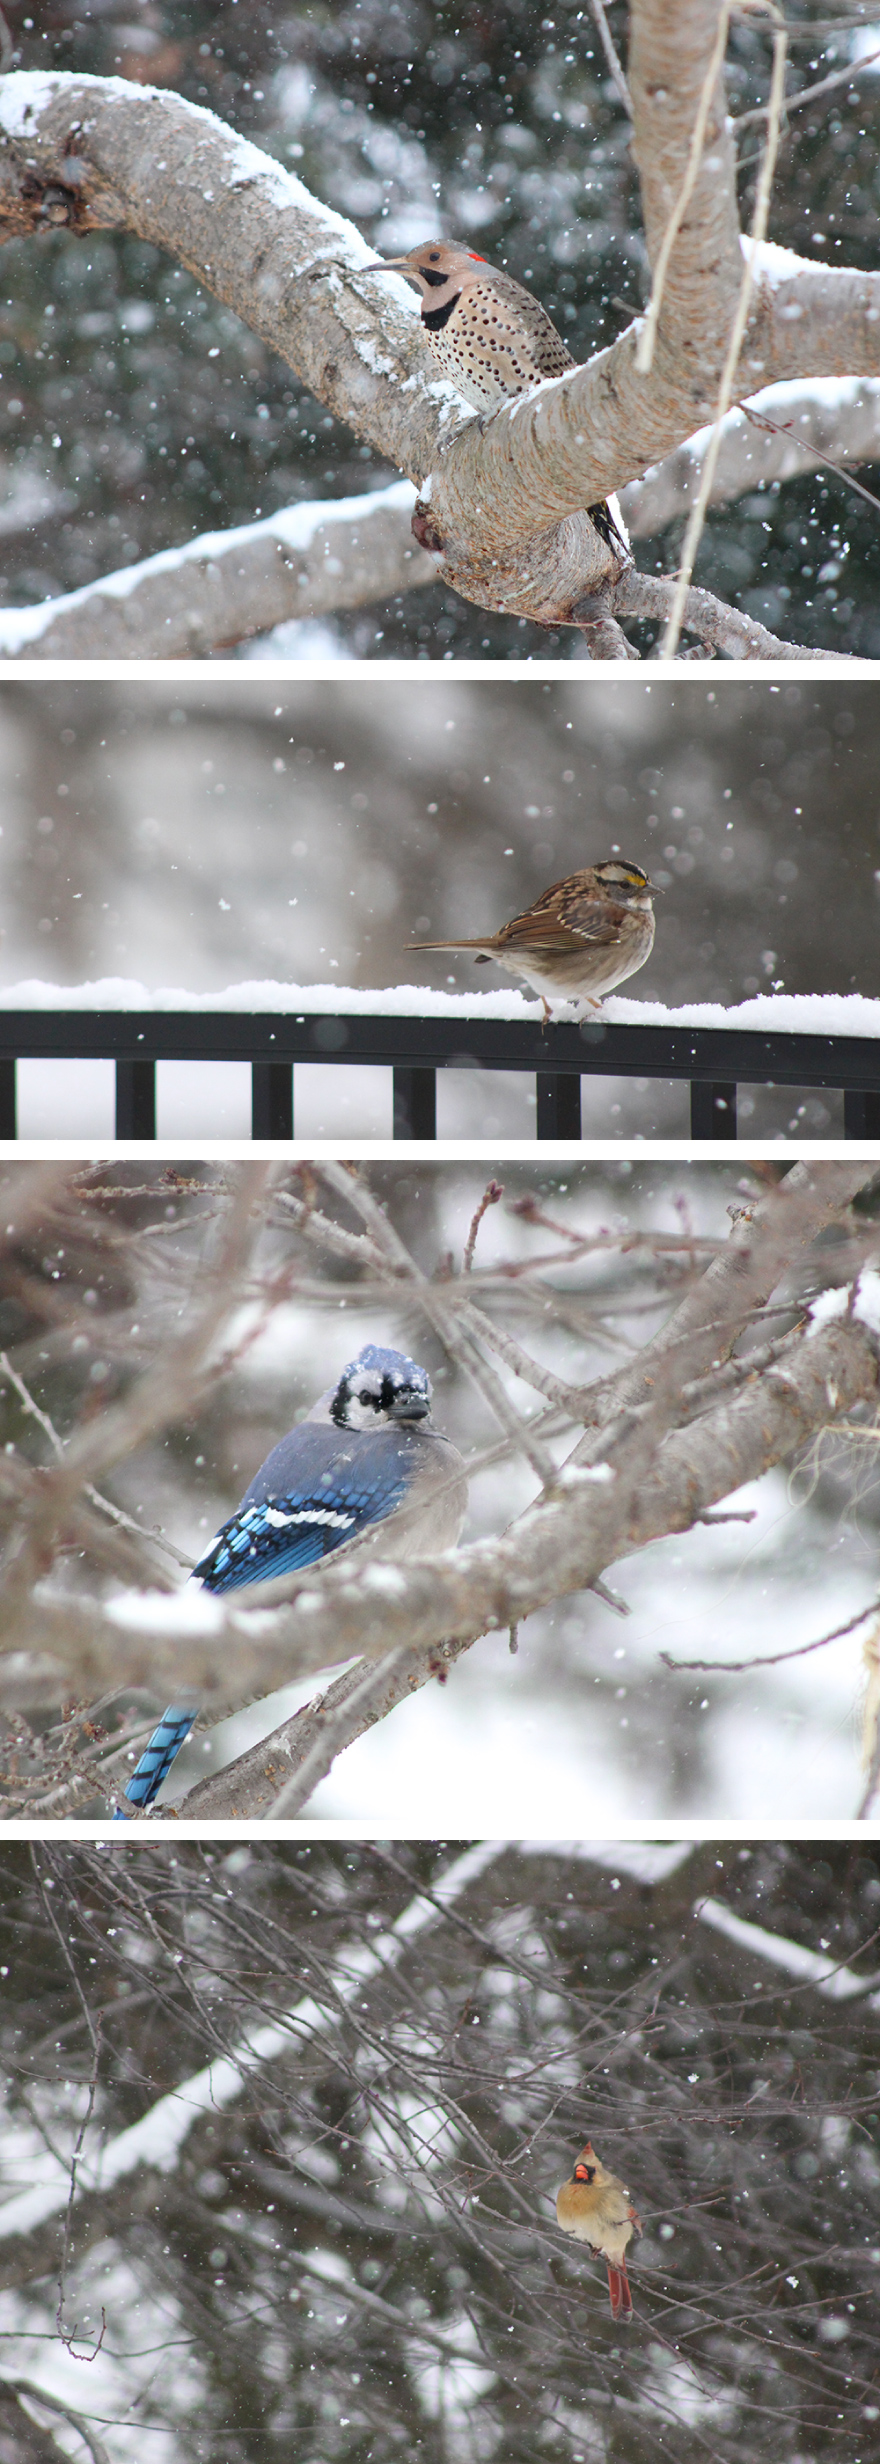 A snowy day and beautiful array of hungry birds. I'm trying not to be a bitter grouch all winter, but some days I swear I am cold-blooded and need my warming sun to survive. Maybe you can relate. Either way, these beauties bring some color and happiness to the dreary cold and for that I am thankful. Enjoy my little adventure in nature and bird photography.